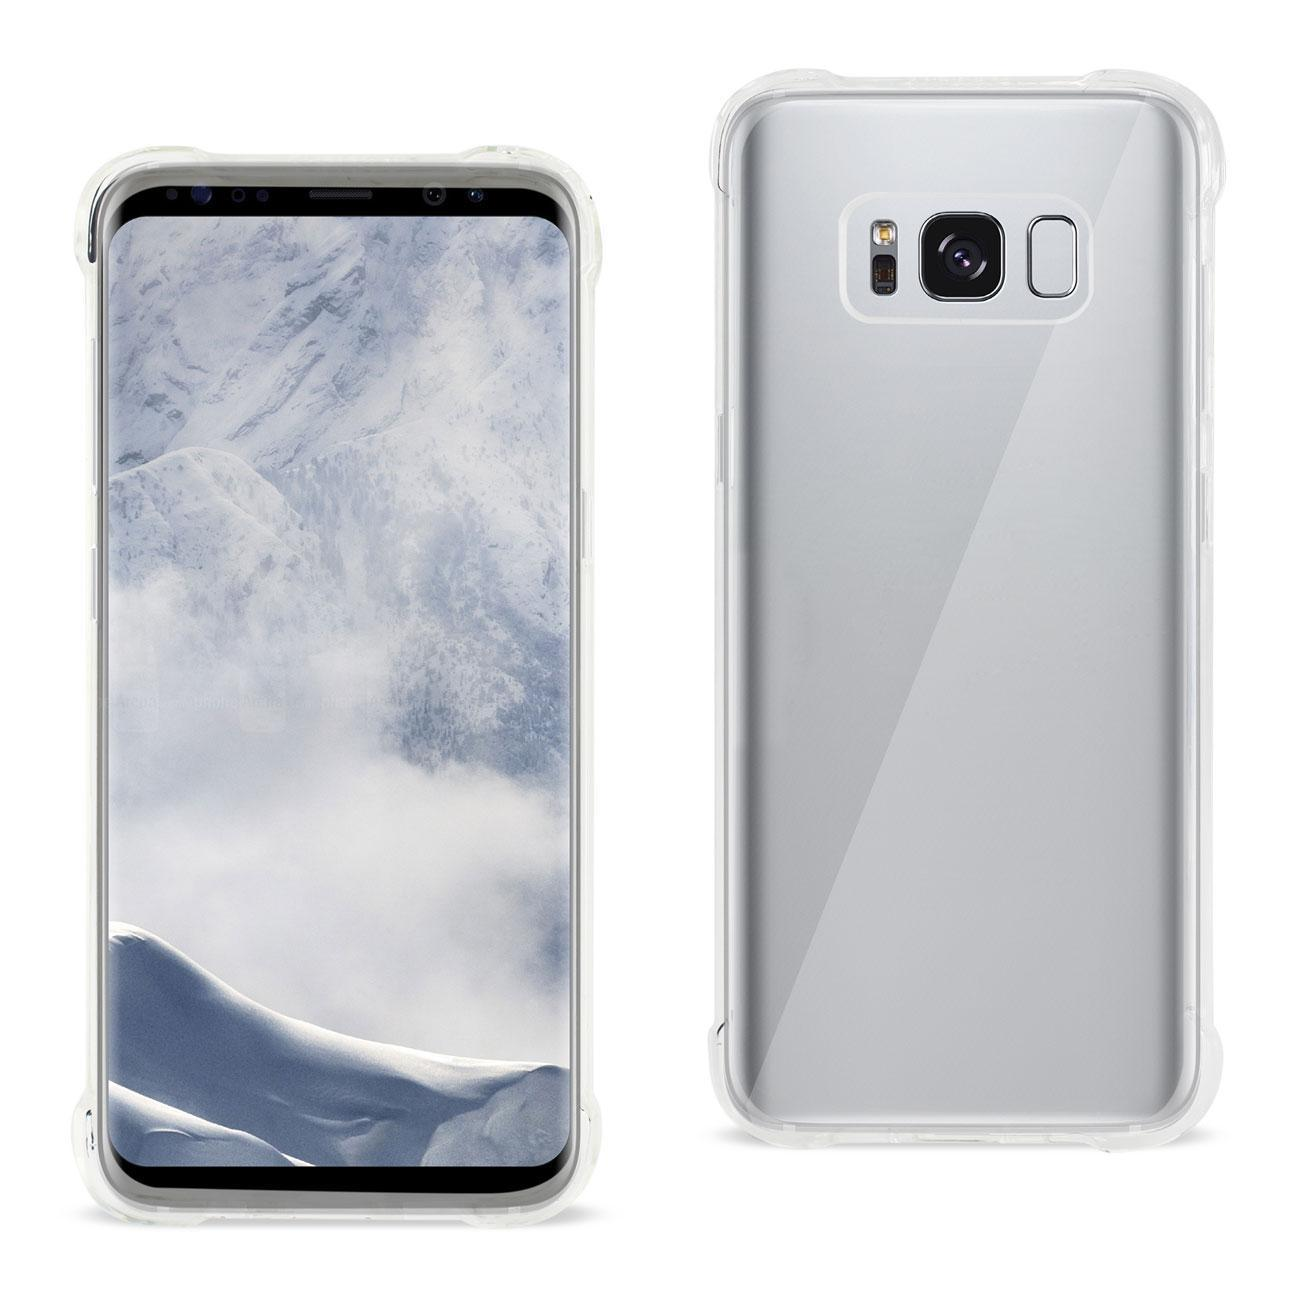 Reiko Samsung Galaxy S8 Clear Bumper Case With Air Cushion Protection In Clear